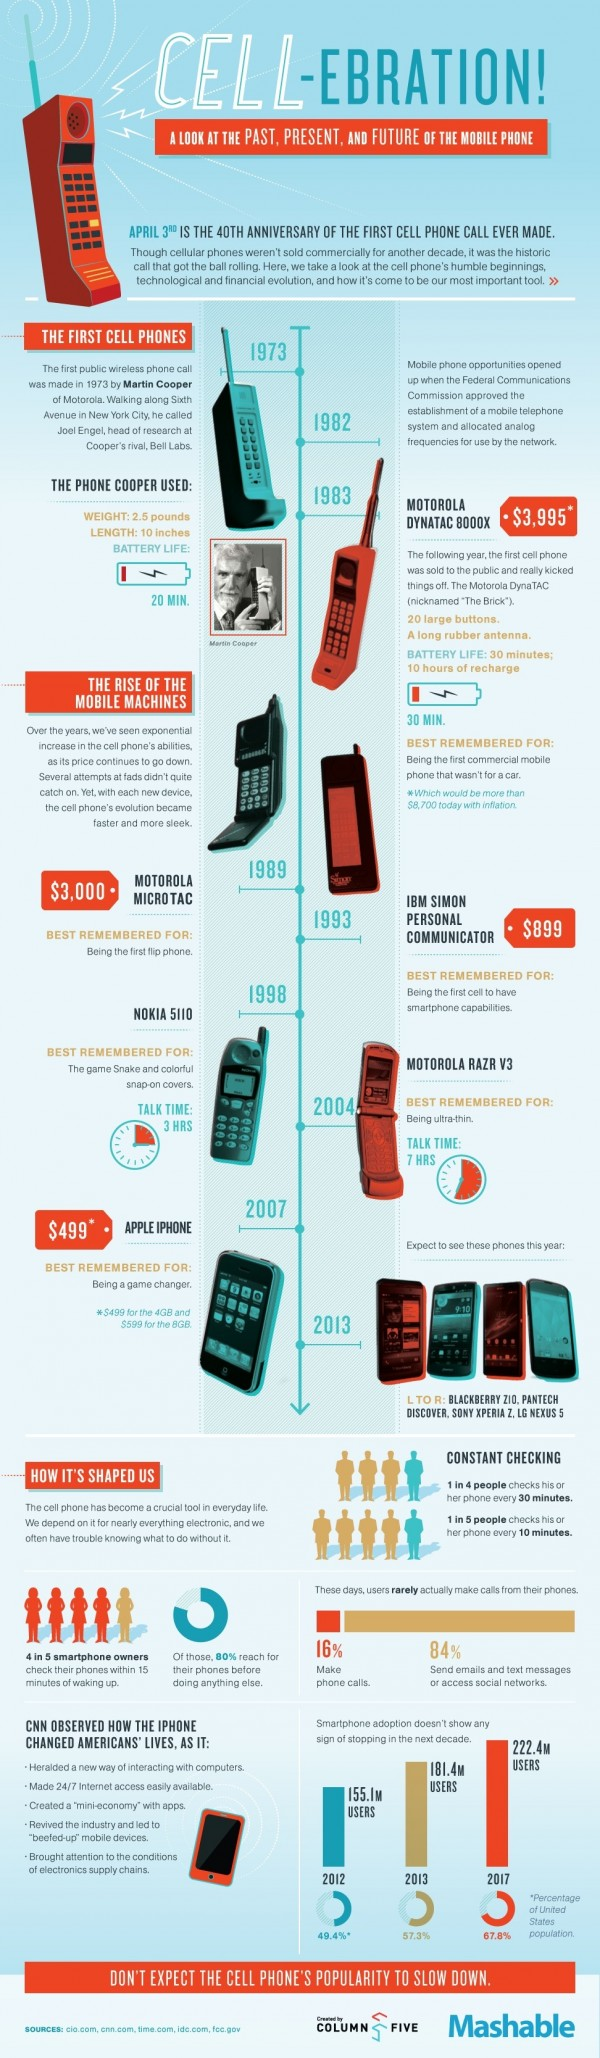 The Cell Phone Turns 40: Pros and Cons of a Cordless Life